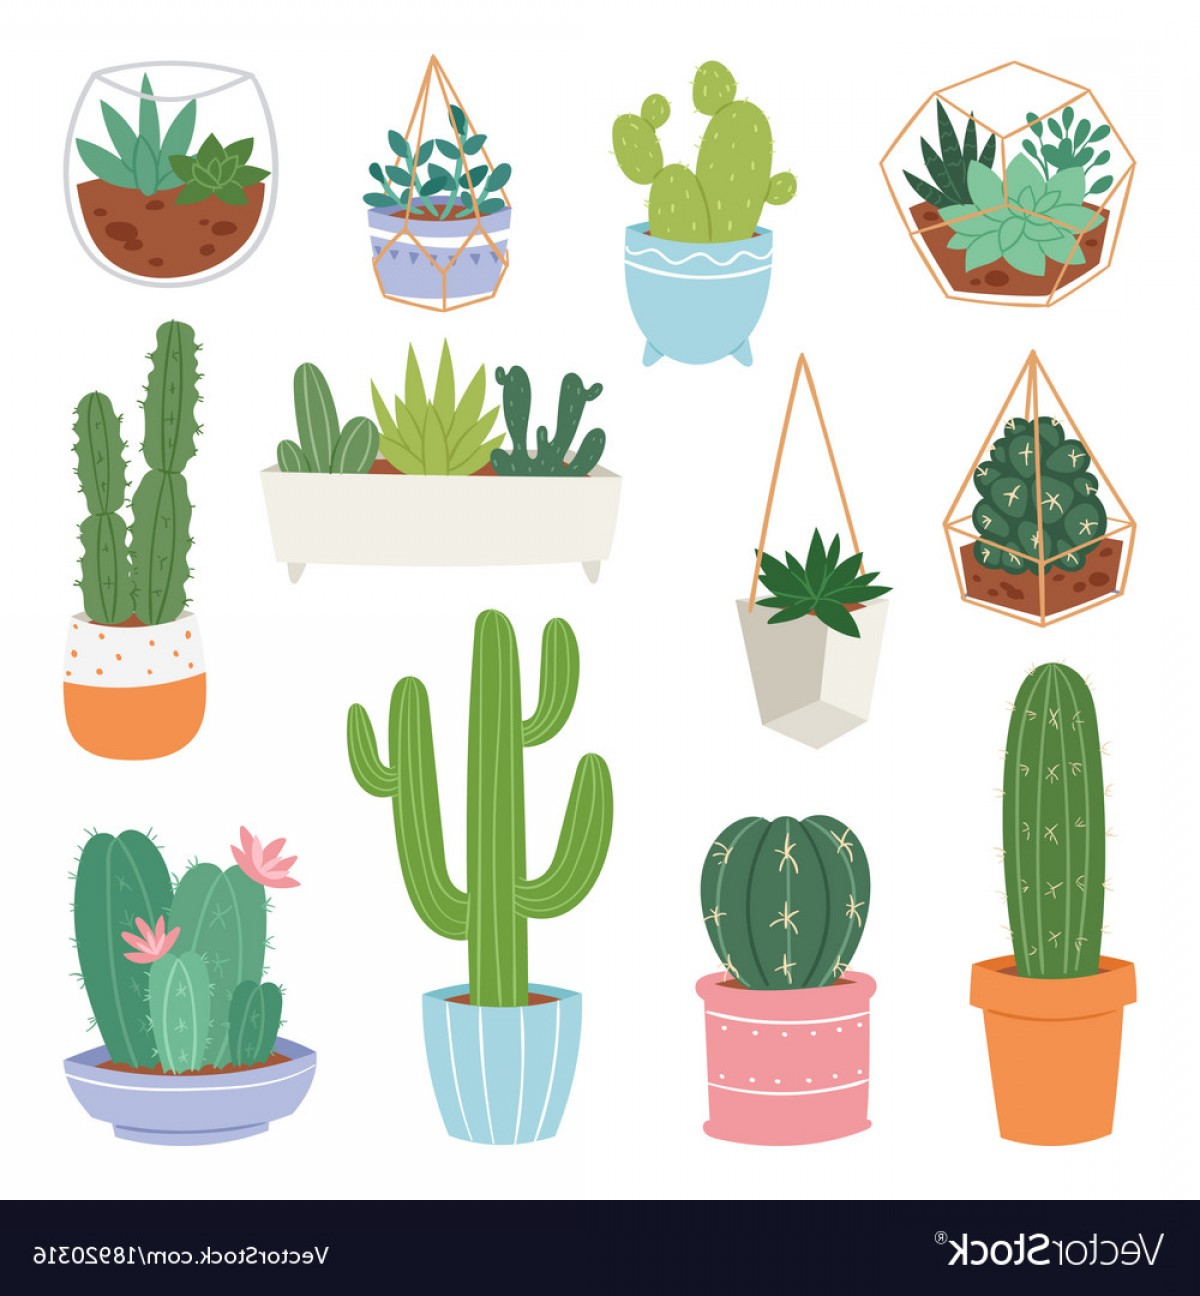 Potted Cactus Plant Vector: Cactus Cartoon Botanical Cacti Potted Cute Vector